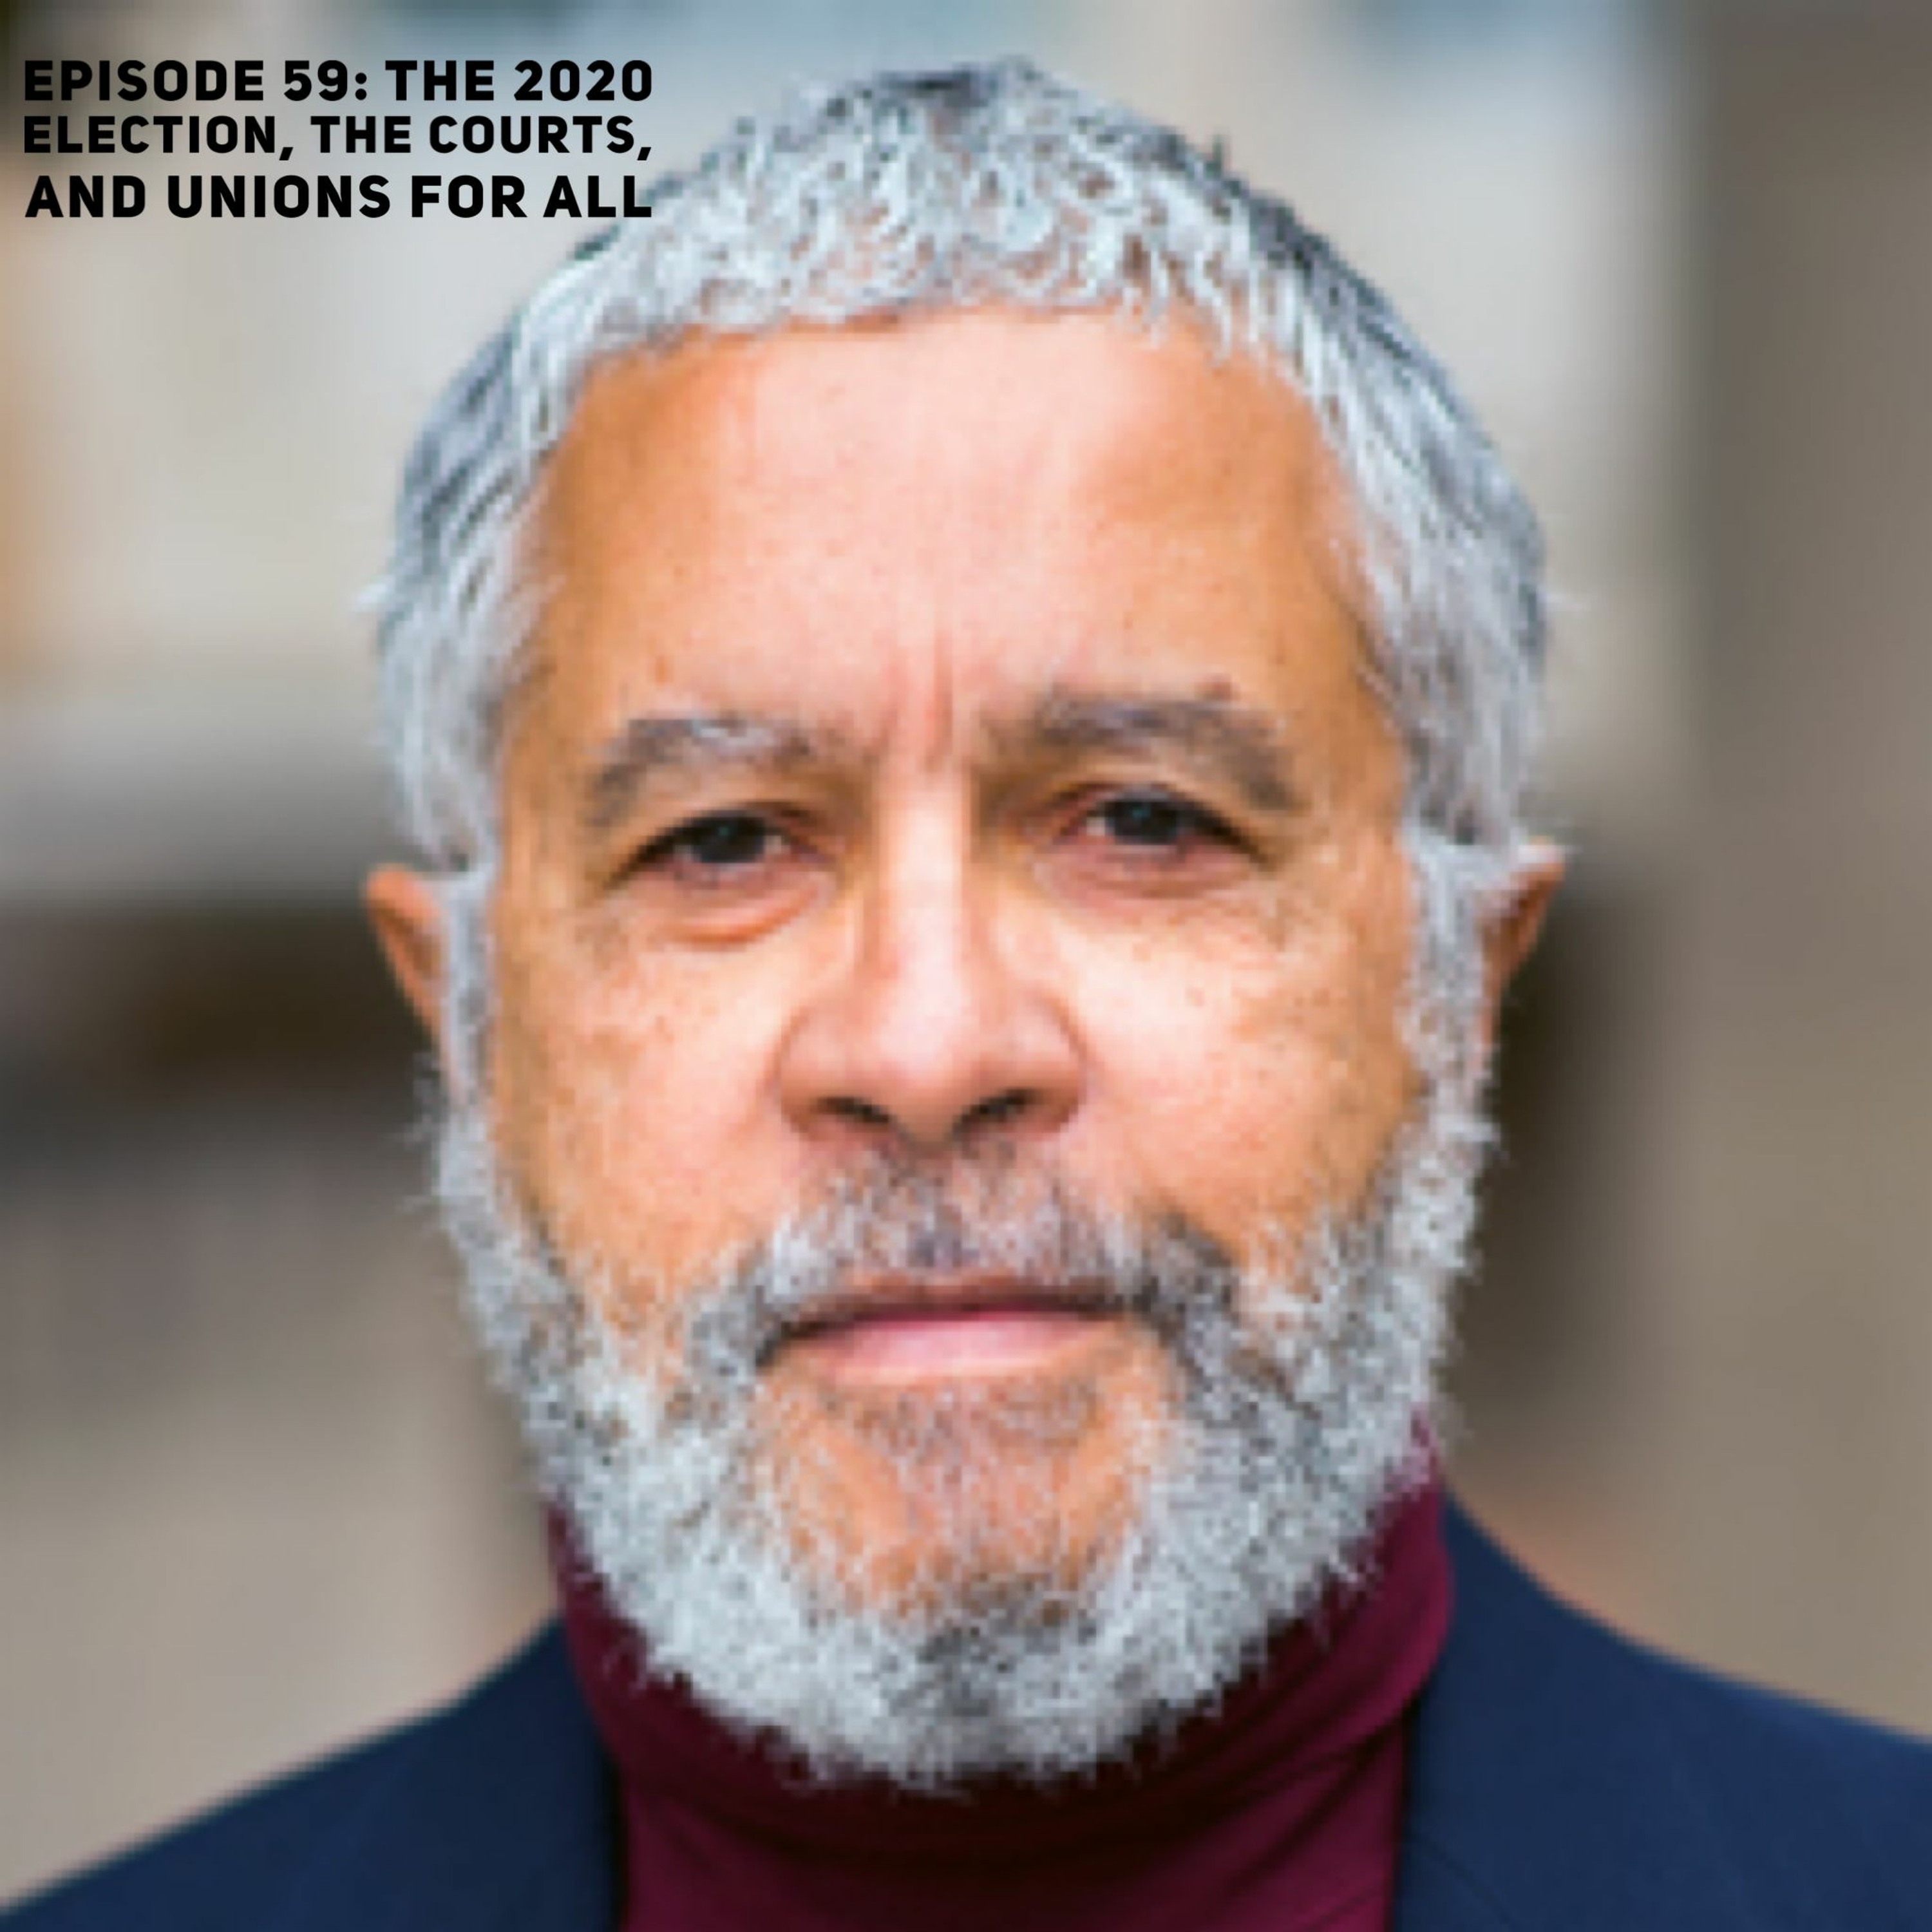 Episode 59: The 2020 Election, The Courts, And Unions For All with Prof. Harold McDougall